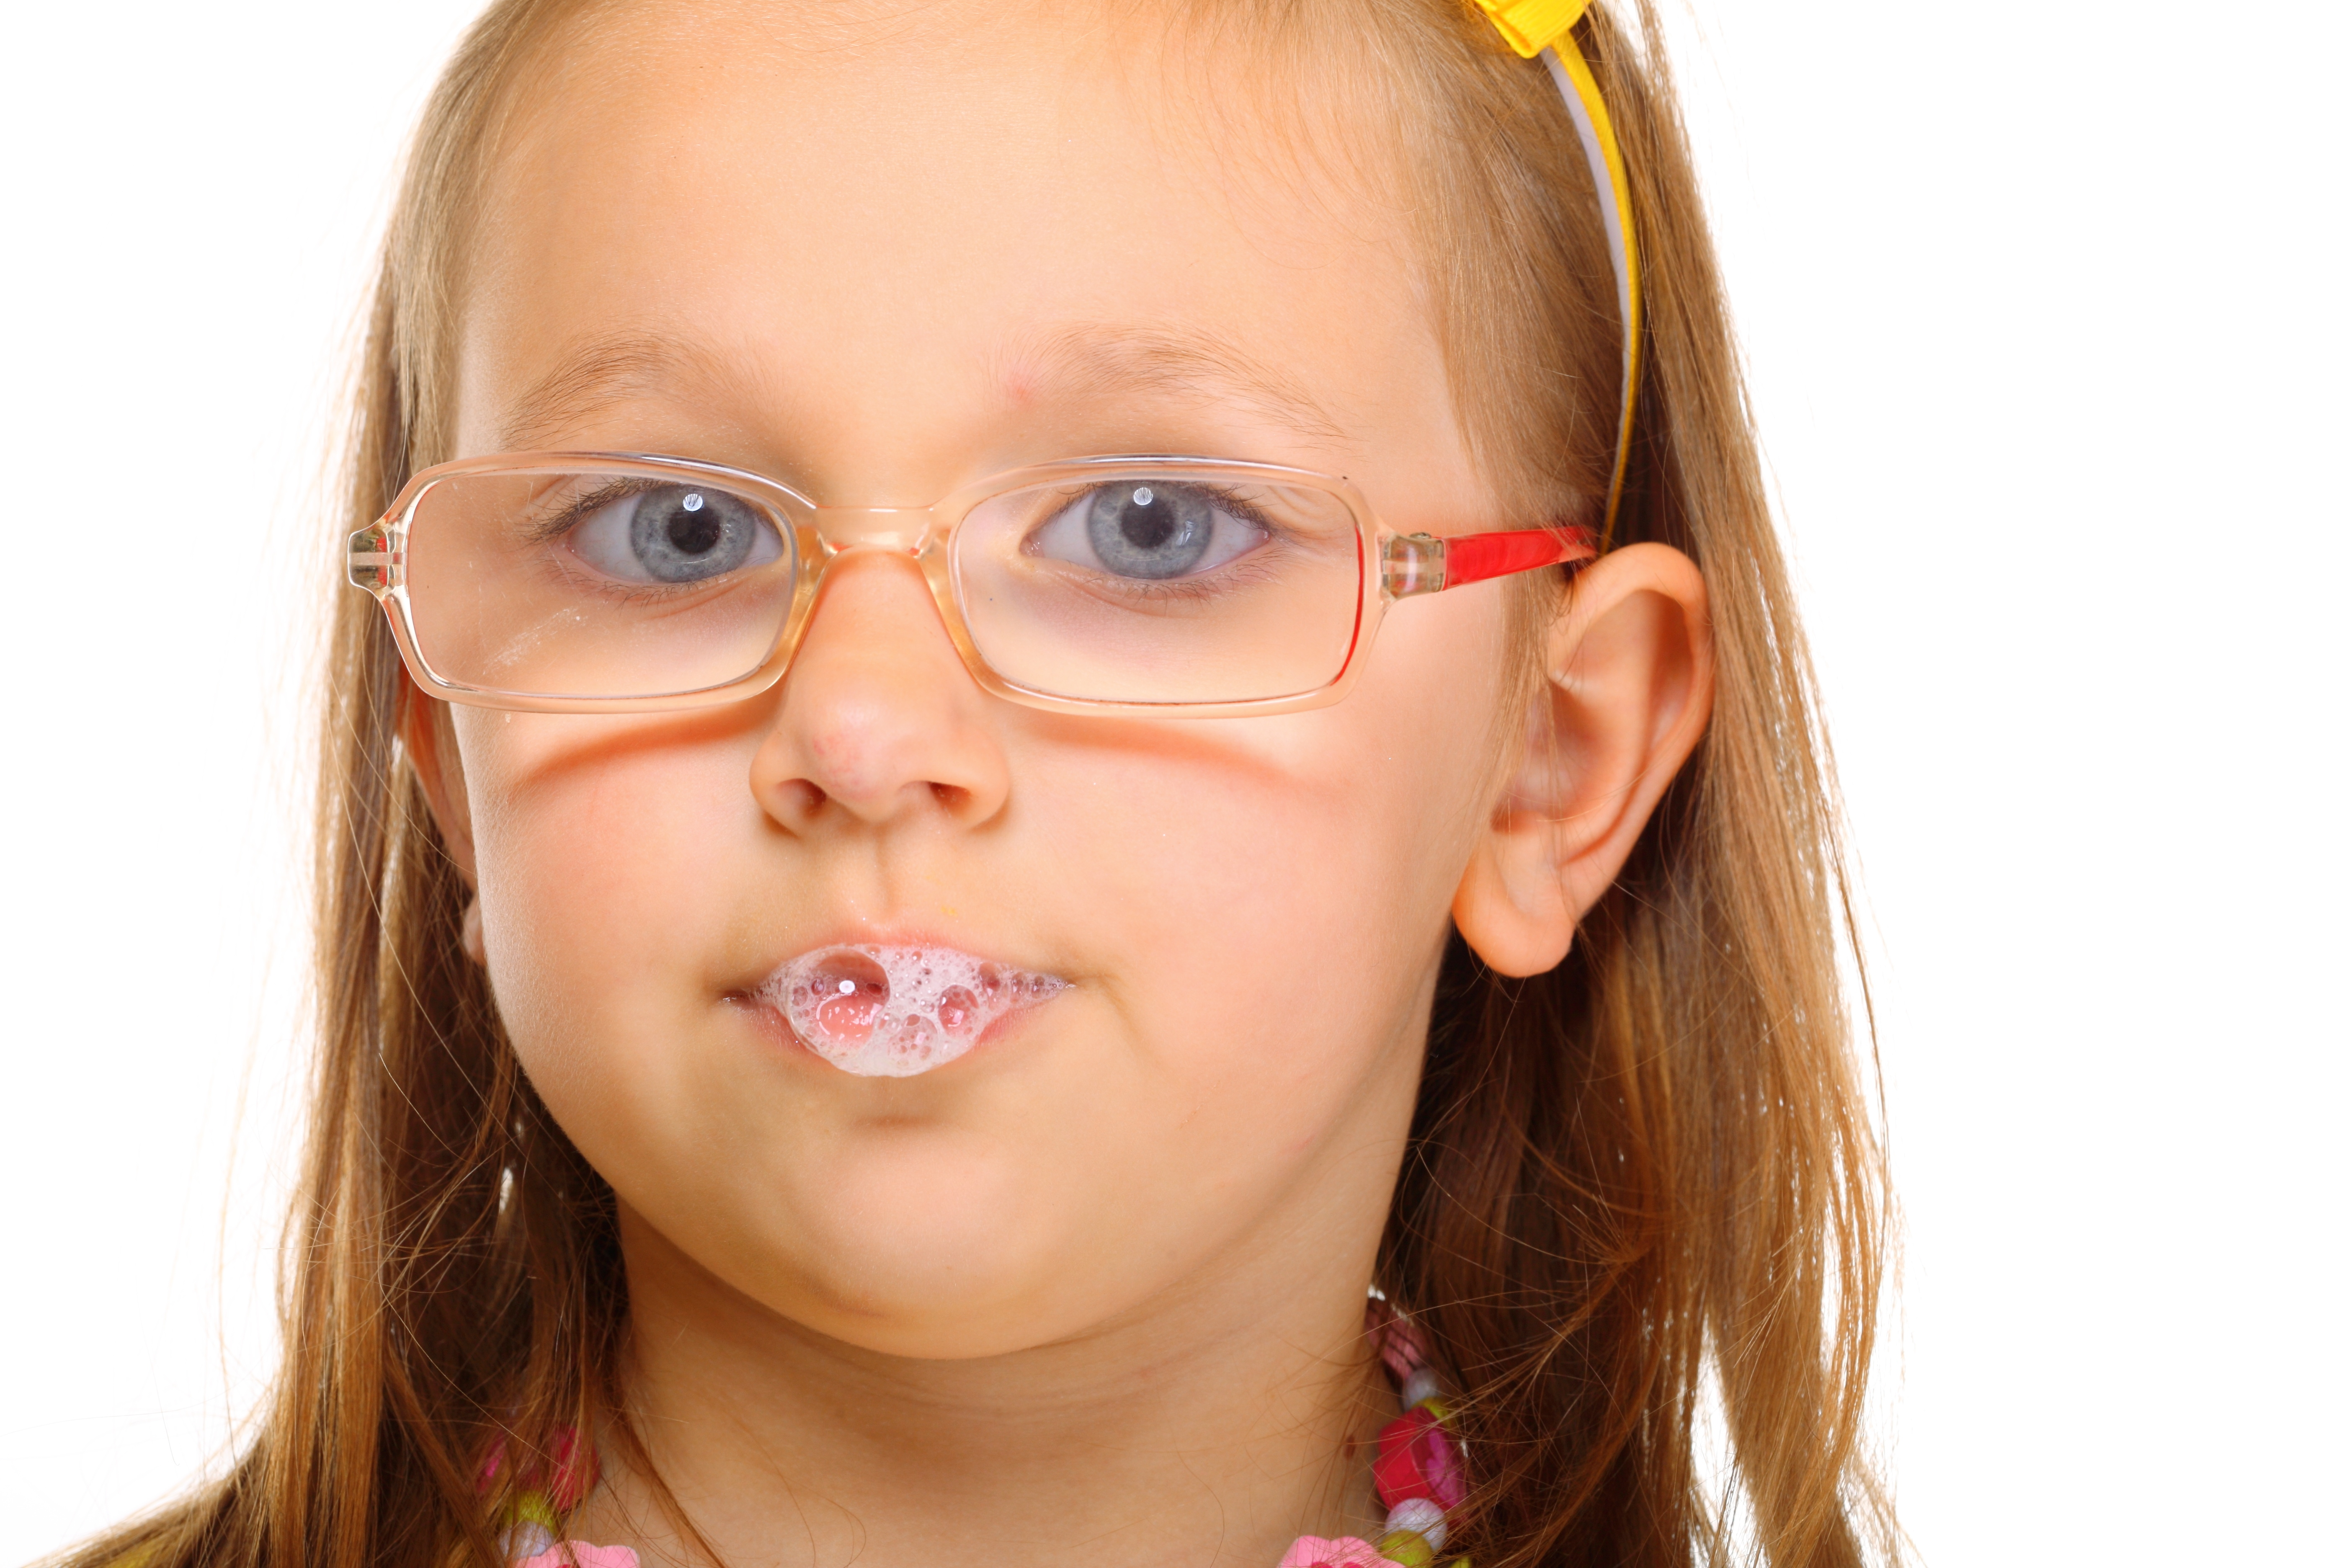 Anxious Child Spits Compulsively - Normal or OCD?